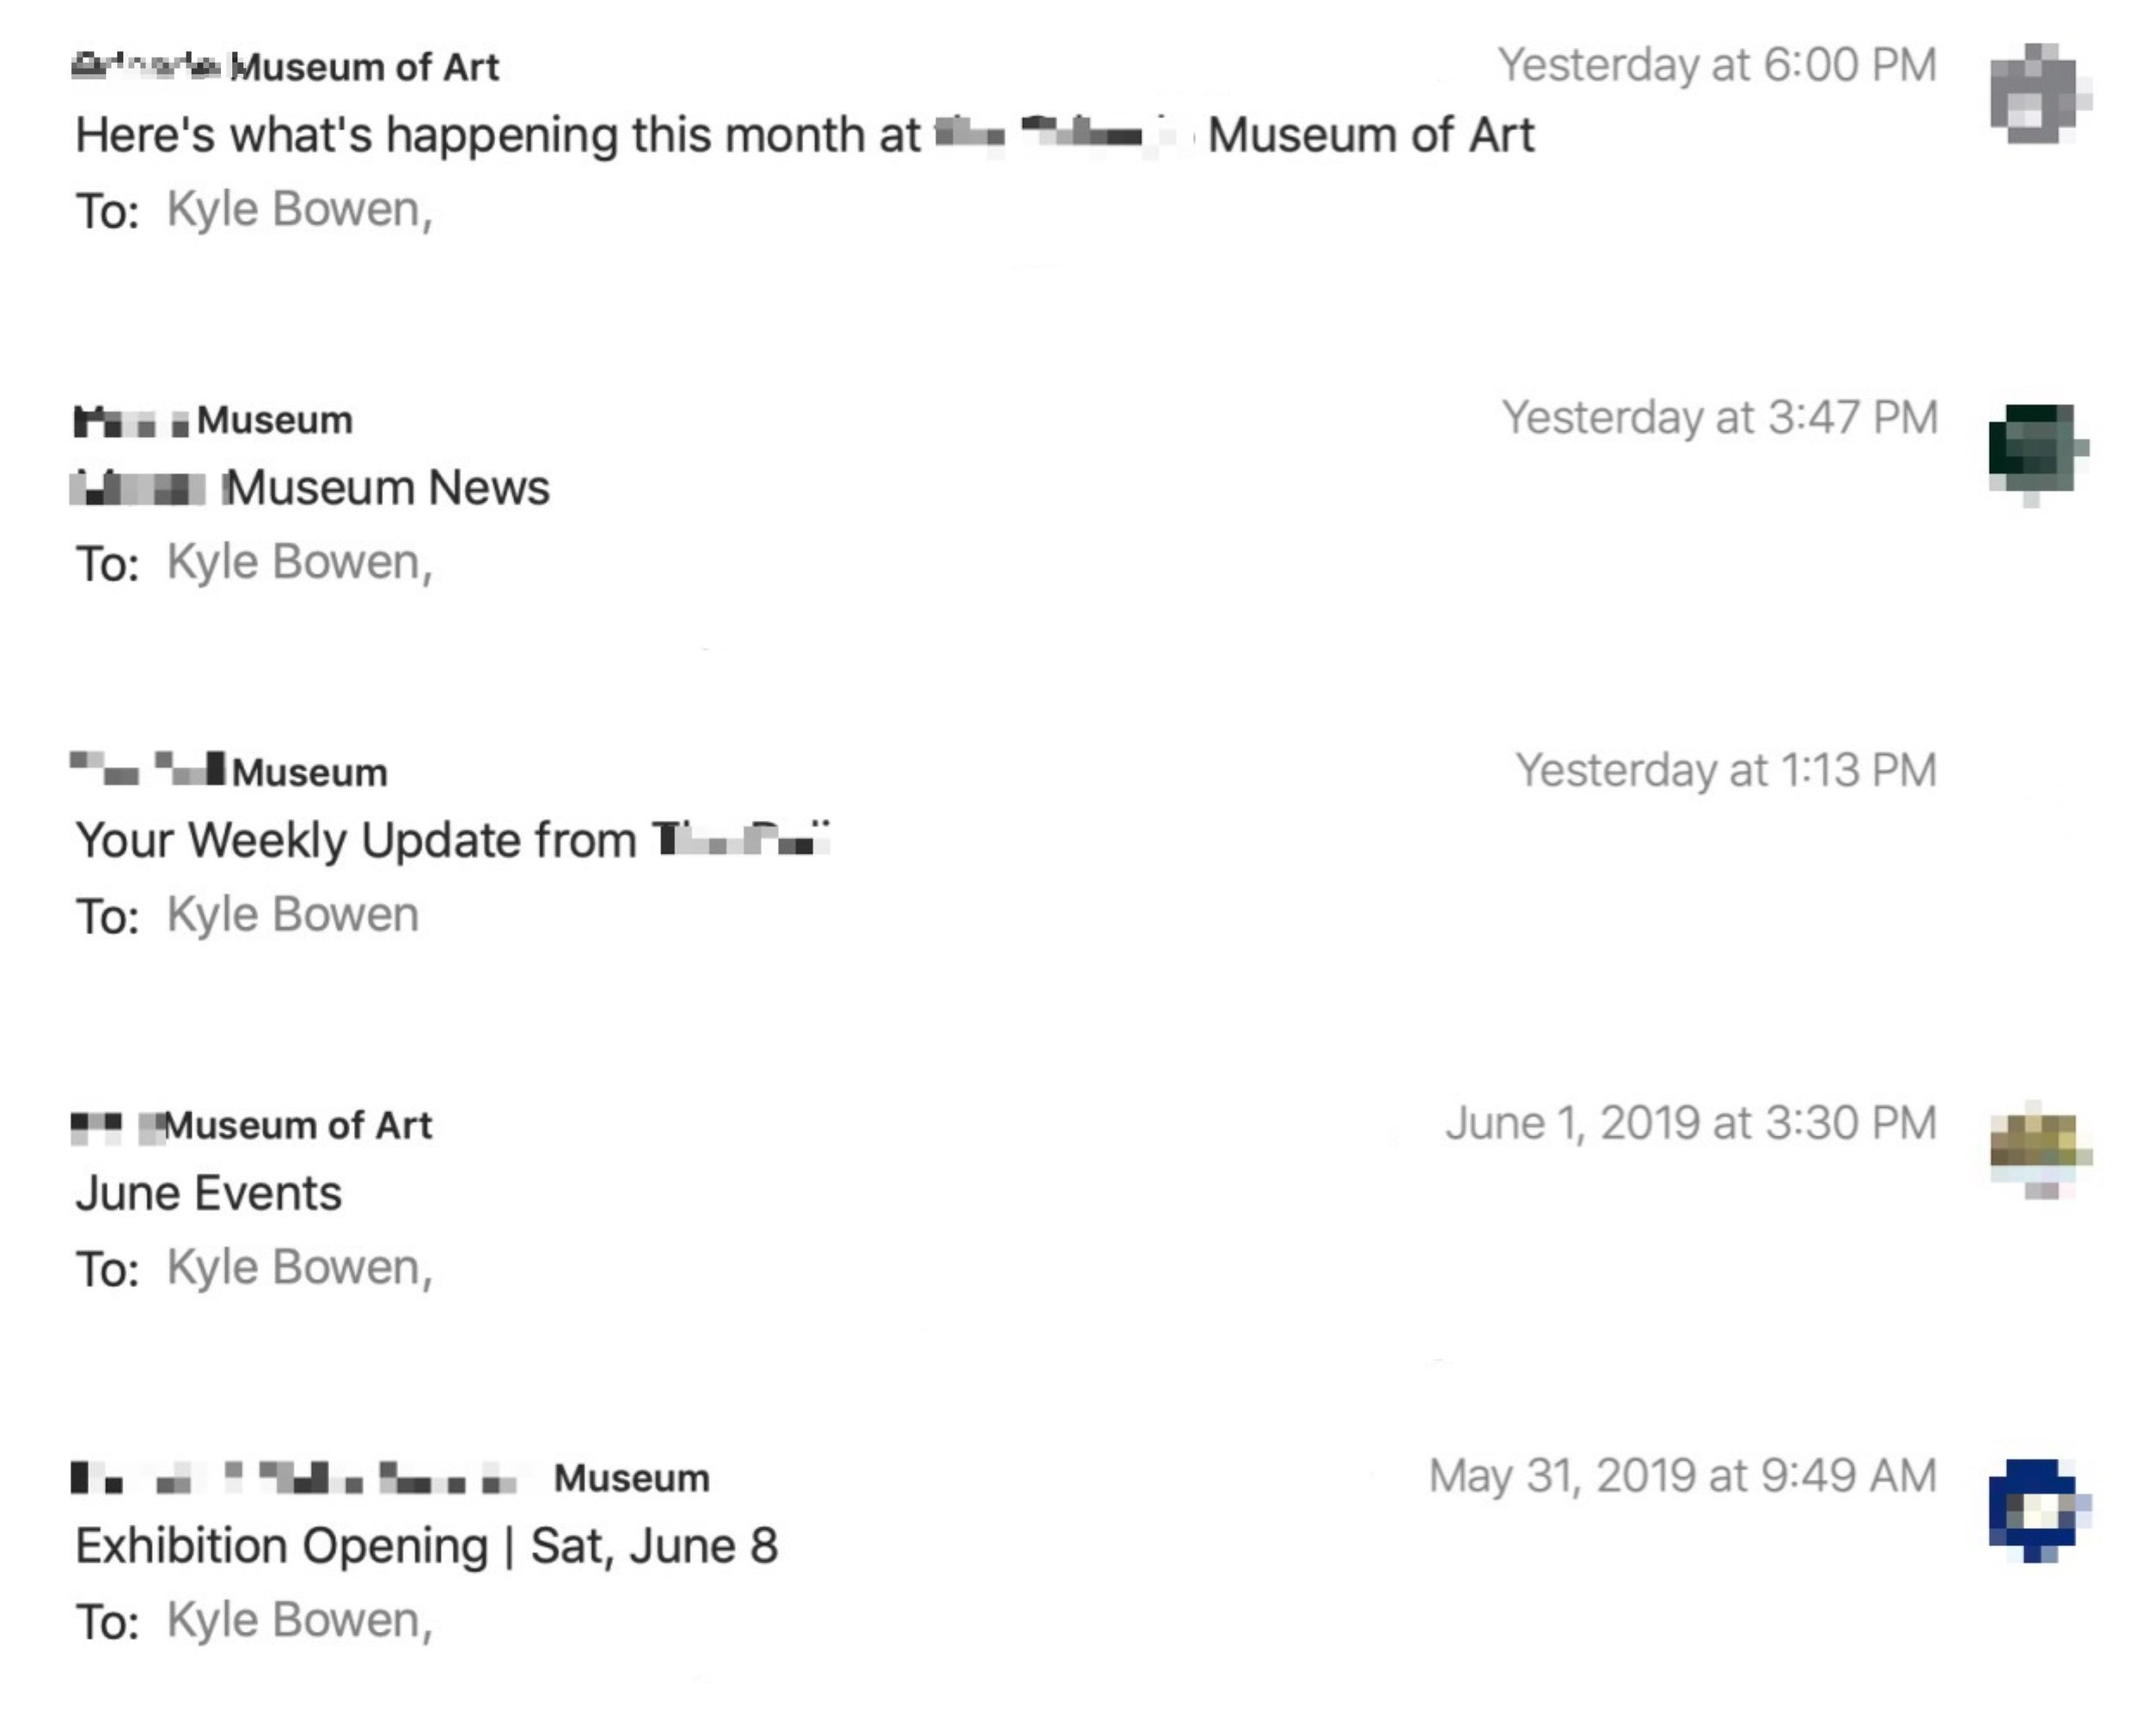 Museum newsletter subject lines